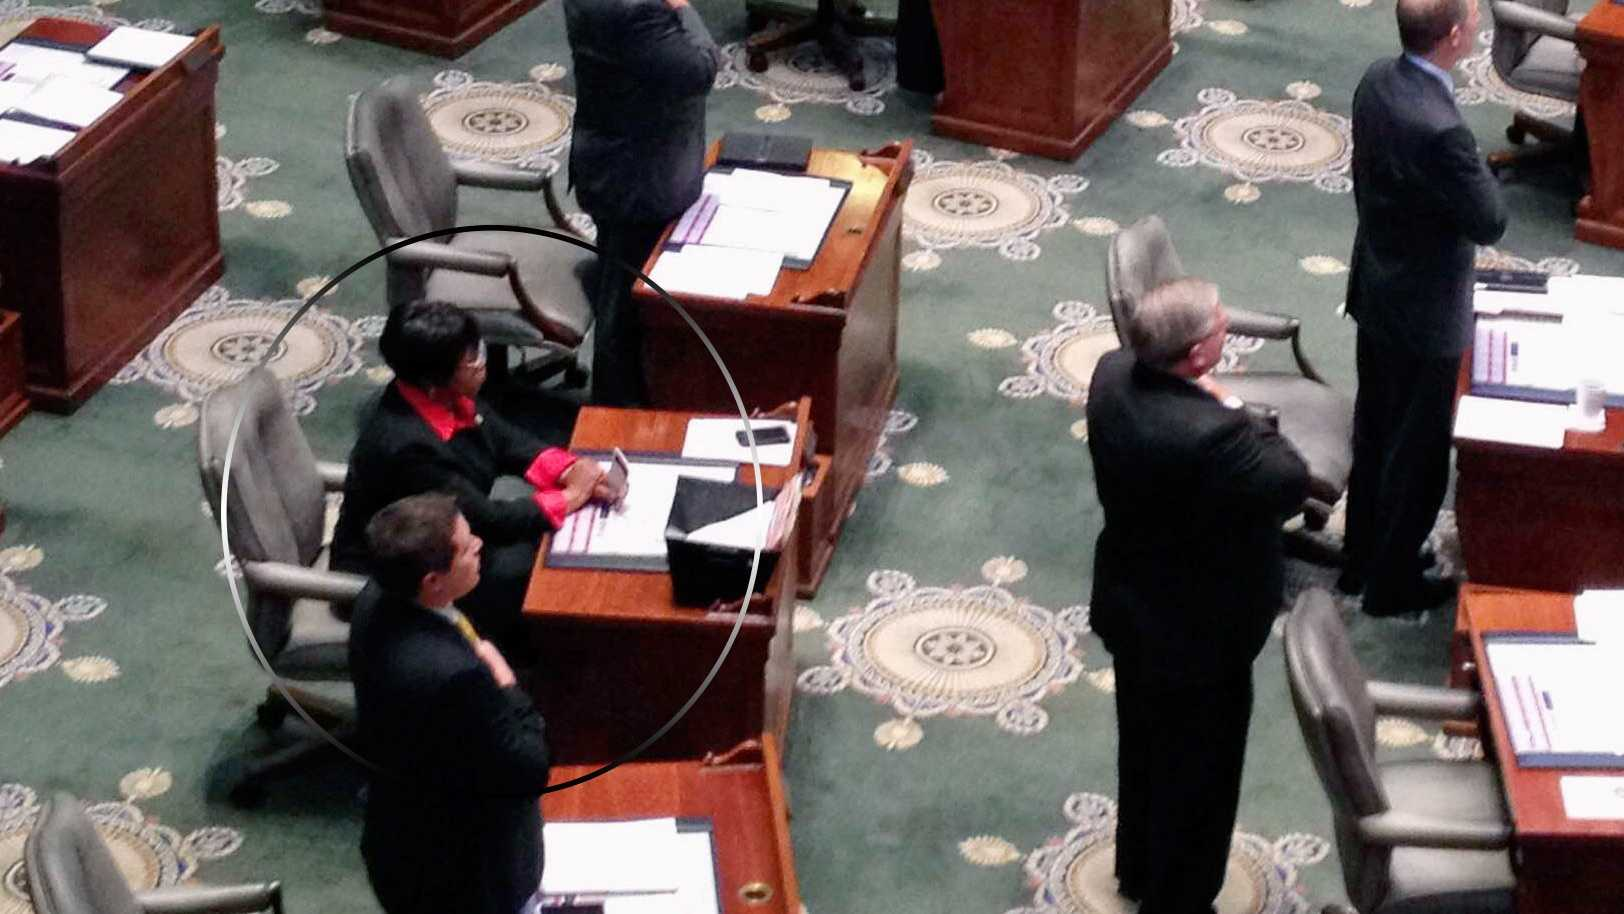 Missouri state Sen. Jamilah Nasheed, a St. Louis Democrat, sits, third from left, while her colleagues recite the Pledge of Allegiance in the state Capitol in Jefferson City on Wednesday, Sept. 14, 2016. Nasheed says her silent protest on the Senate floor was intended to show solidarity with San Francisco 49ers quarterback Colin Kaepernick, who has kneeled for the national anthem in protest of police brutality and racial oppression. (AP Photo/Summer Ballentine)